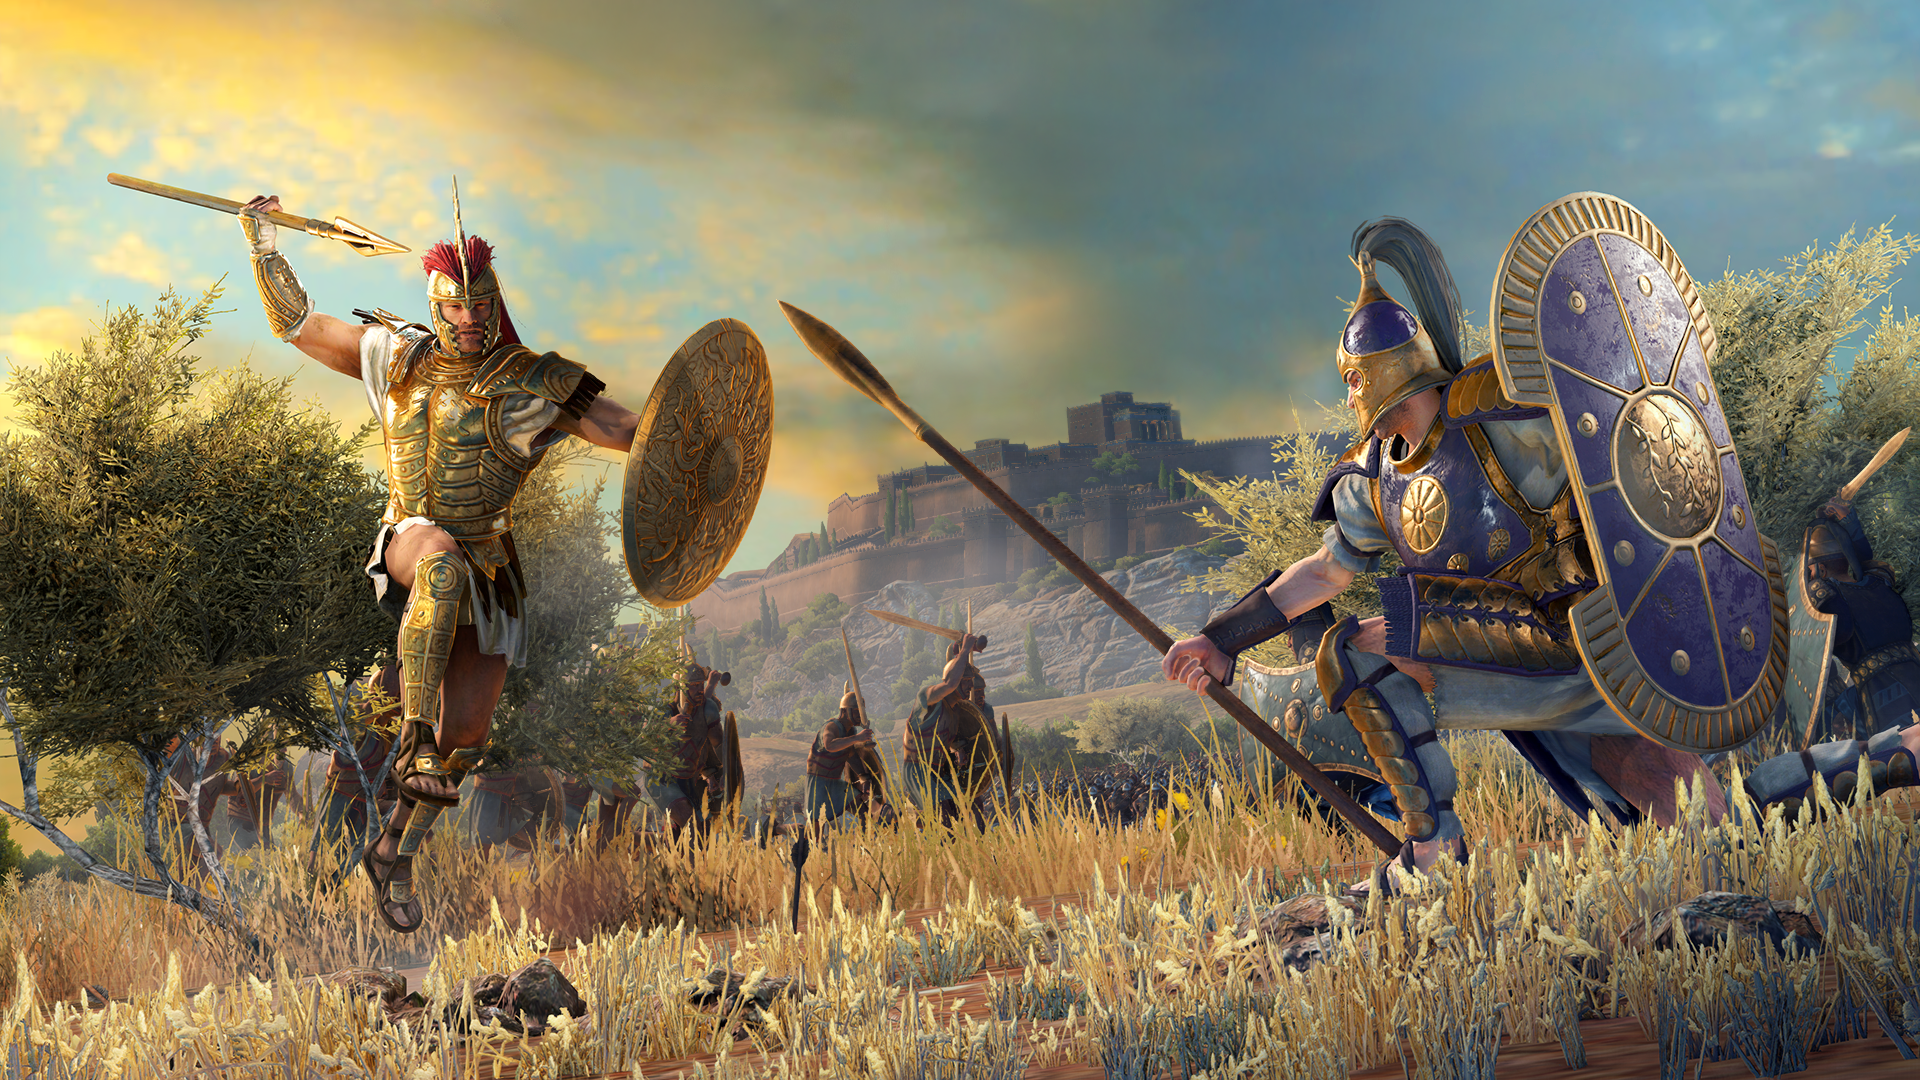 New Total War game launching for free on the Epic Games Store